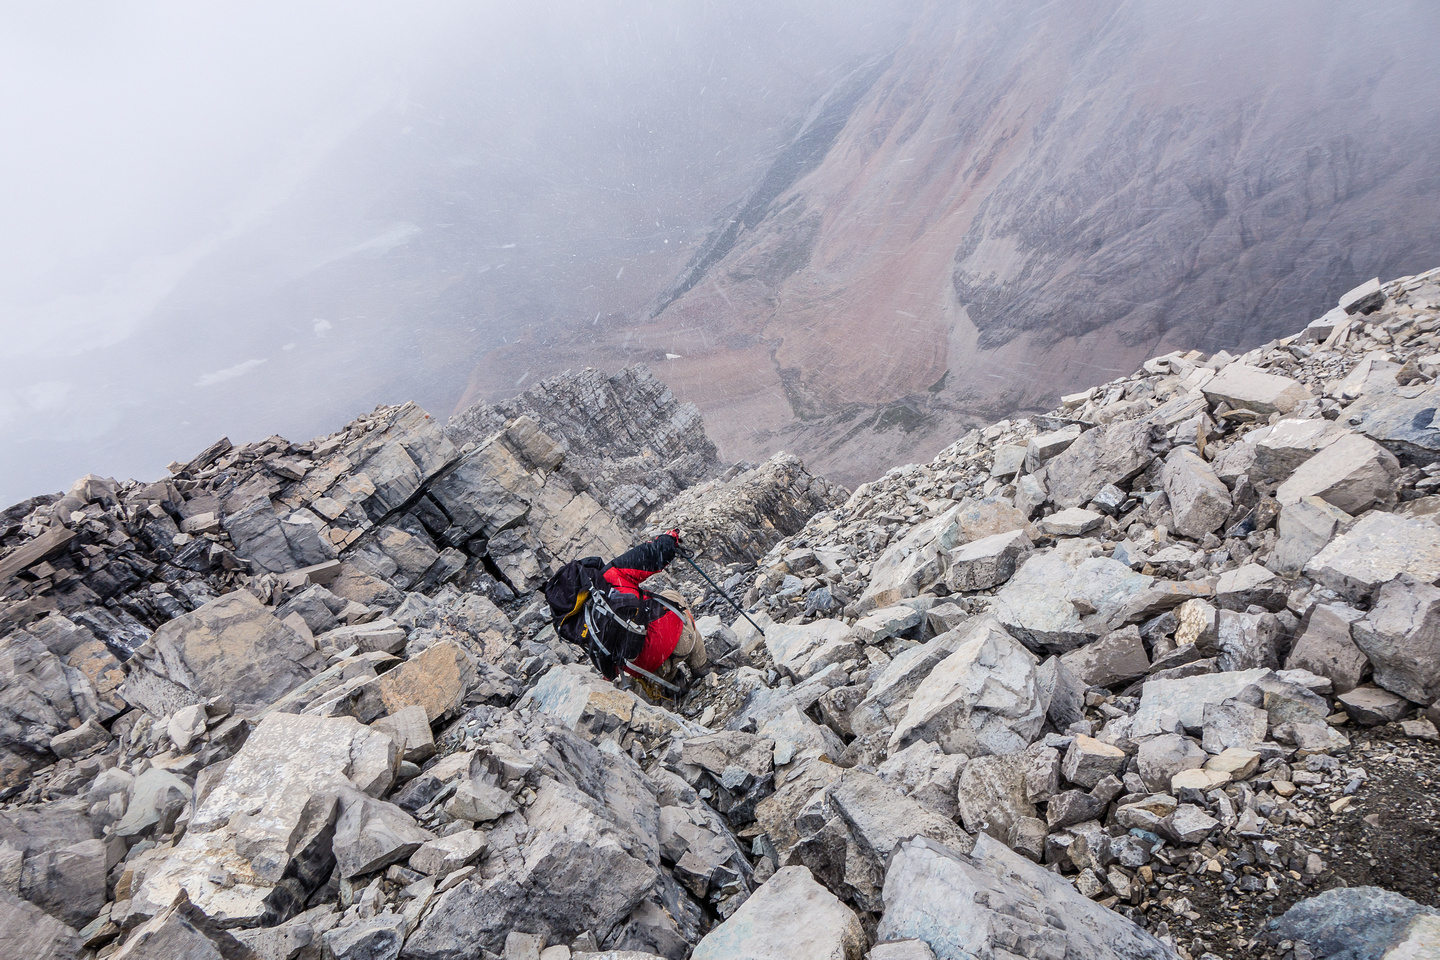 Descending the summit block in a snow squall. Note the loose rocks and steep slabby terrain.